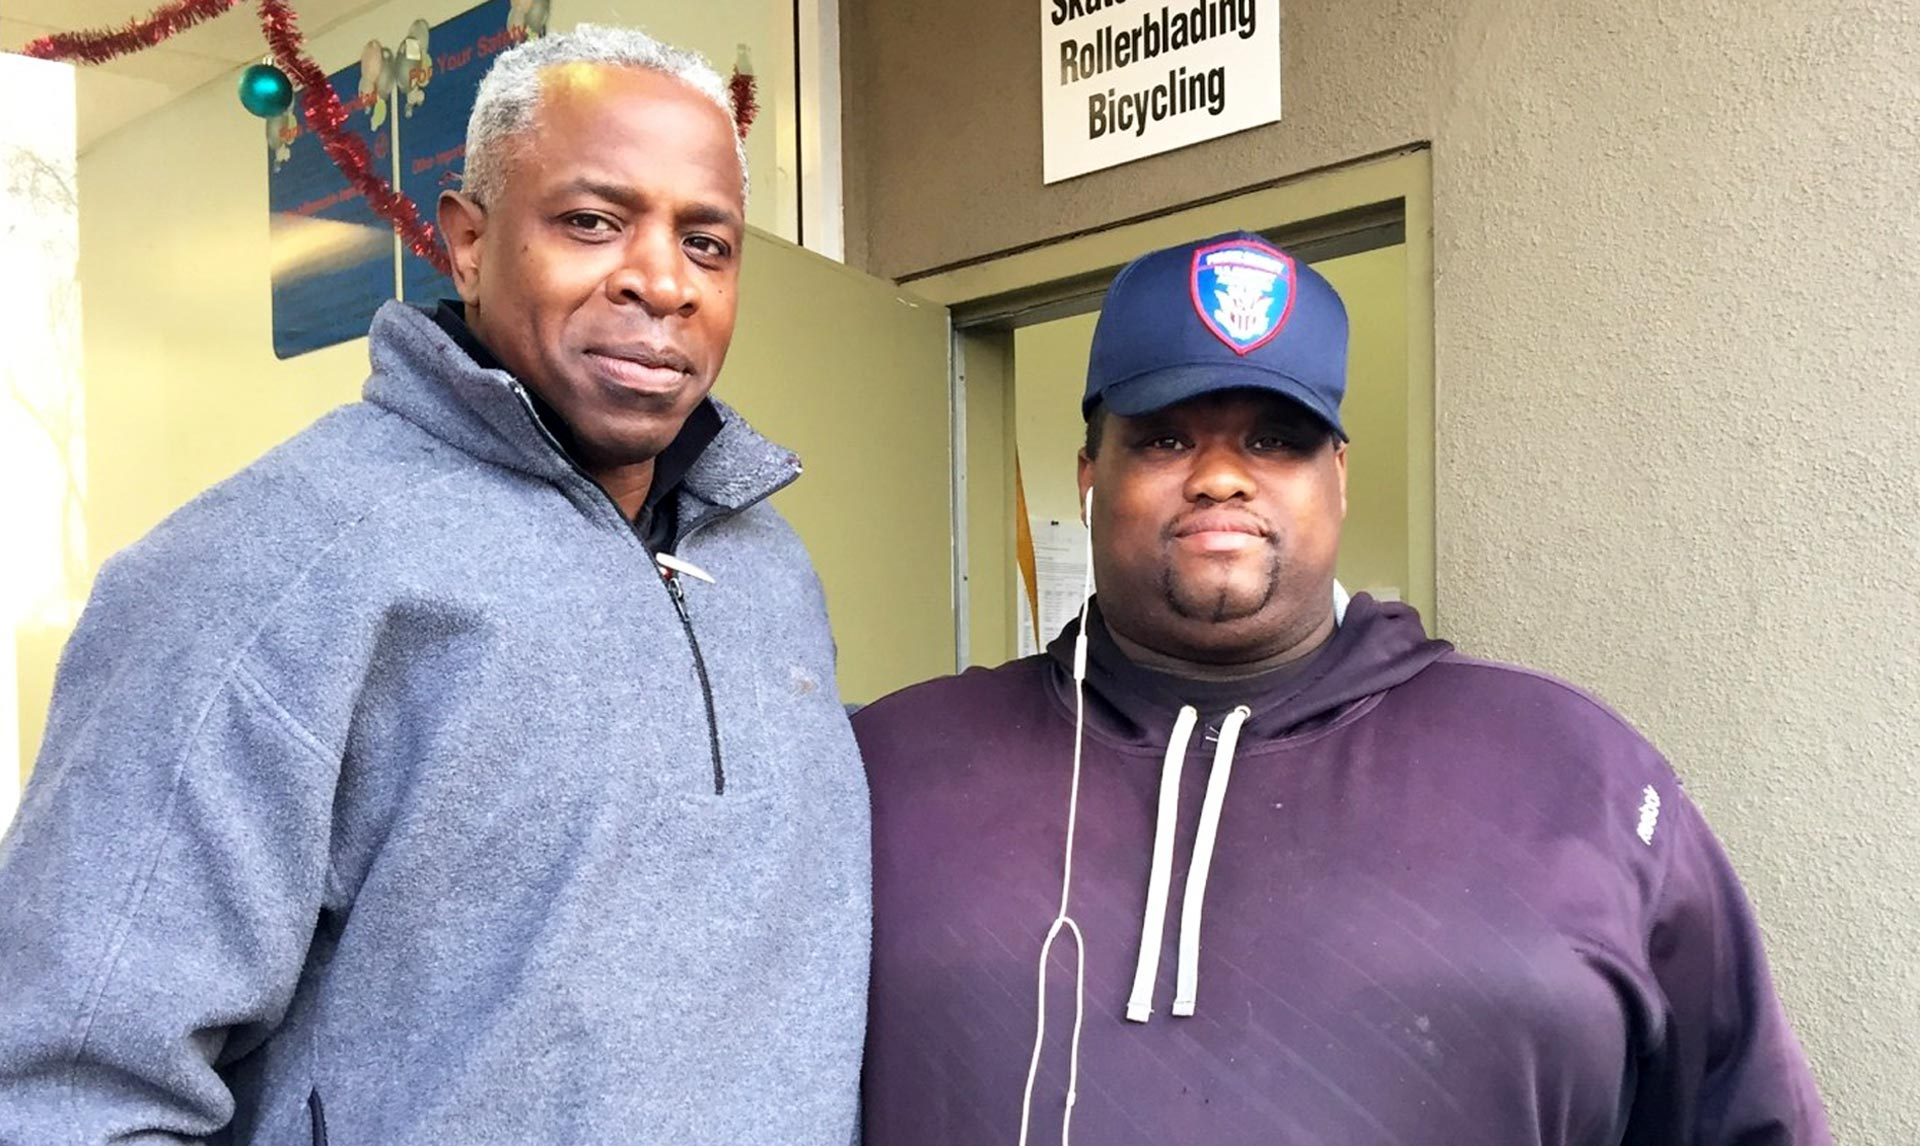 Joseph Latichinson (R) stands with his boss, Wayne Robertson, in San Francisco. Latichinson works full-time but can't afford a place to live.